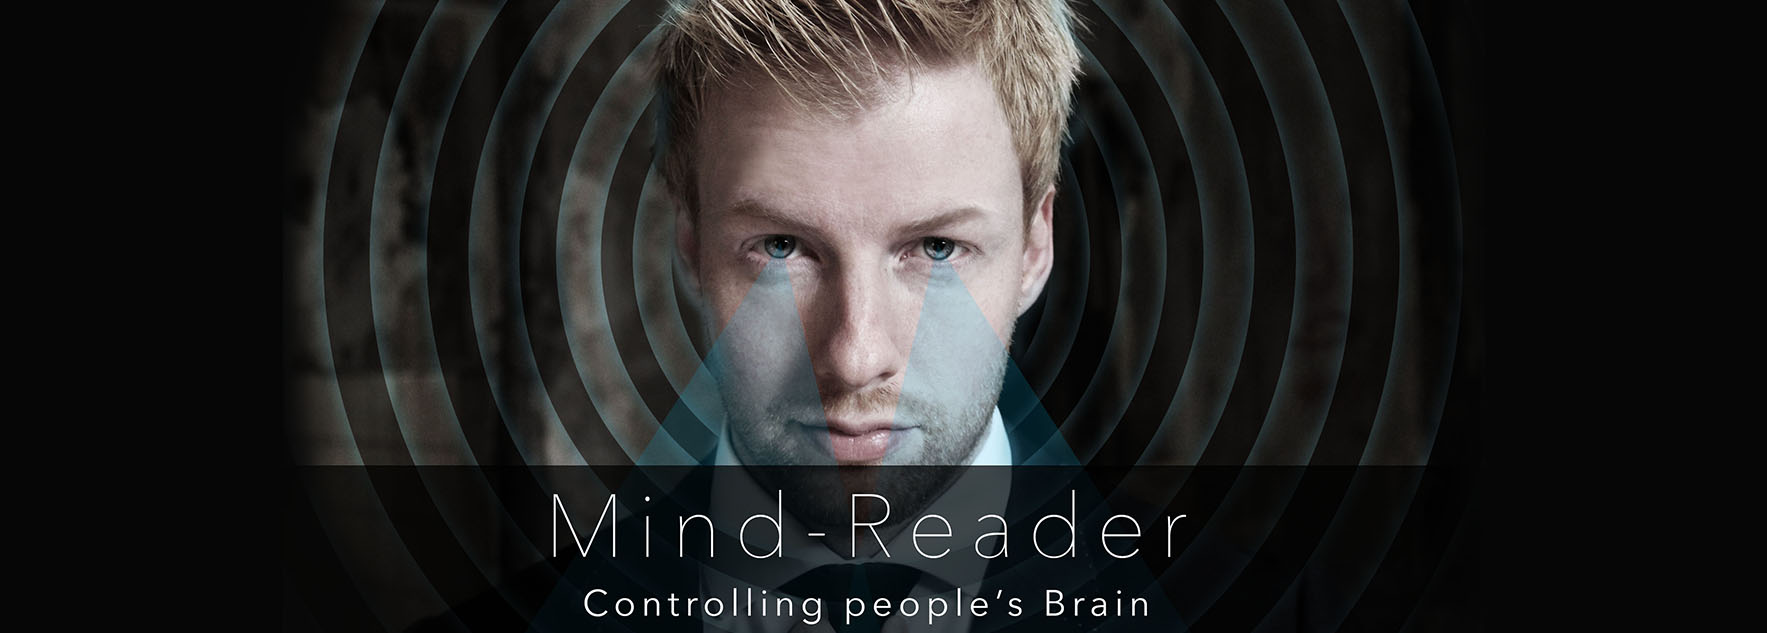 https://goochelaar-steve.nl/wp-content/uploads/2017/10/Mindreader-controlling-peoples-brain.jpg